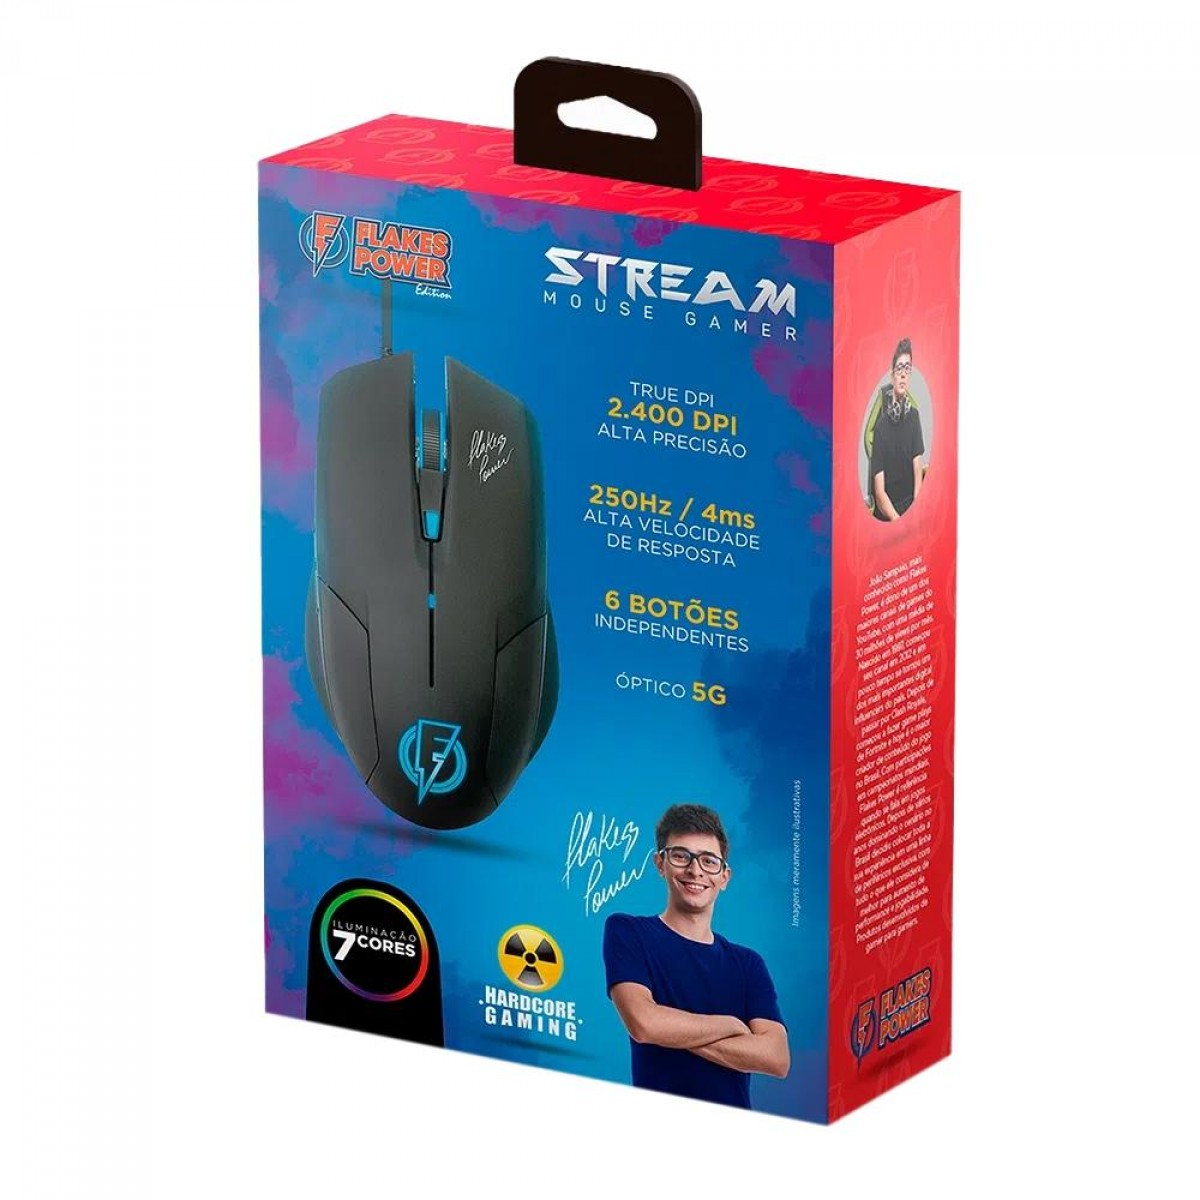 Mouse Gamer ELG Stream Flakes Power, 6 Botões, 2400 DPI, FLKM002